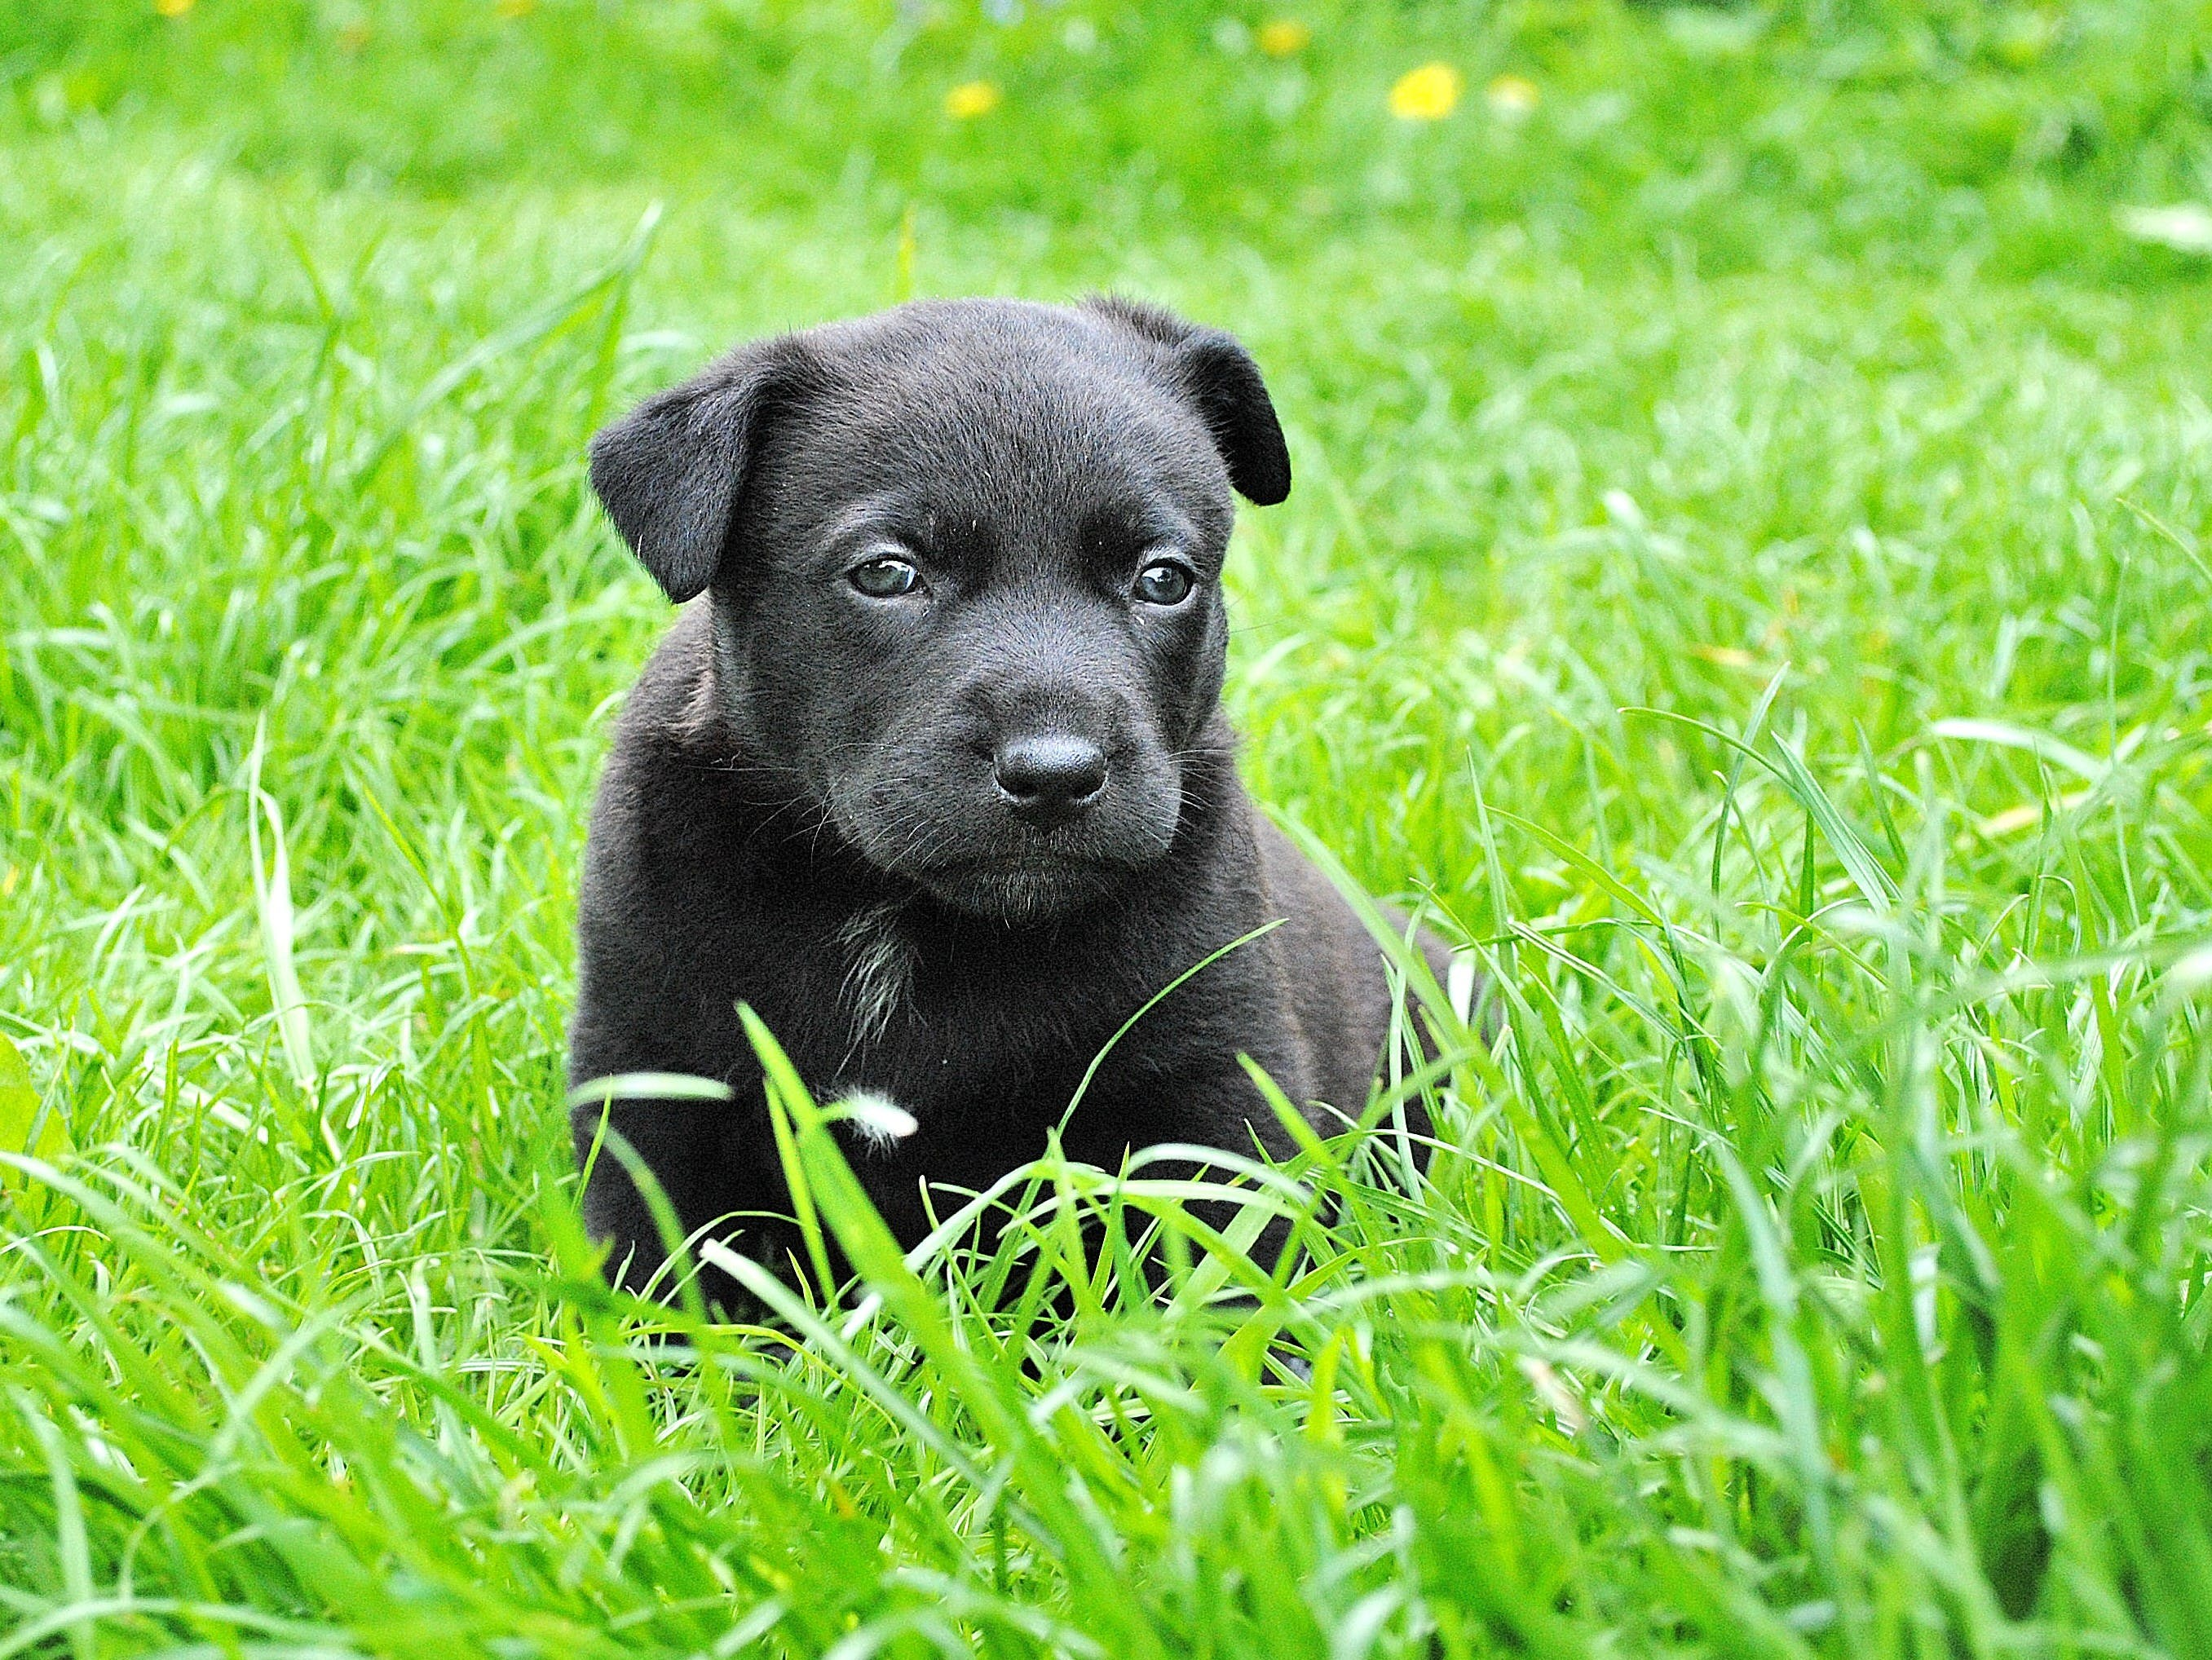 Black Labrador Retriever Puppy on Grass Field